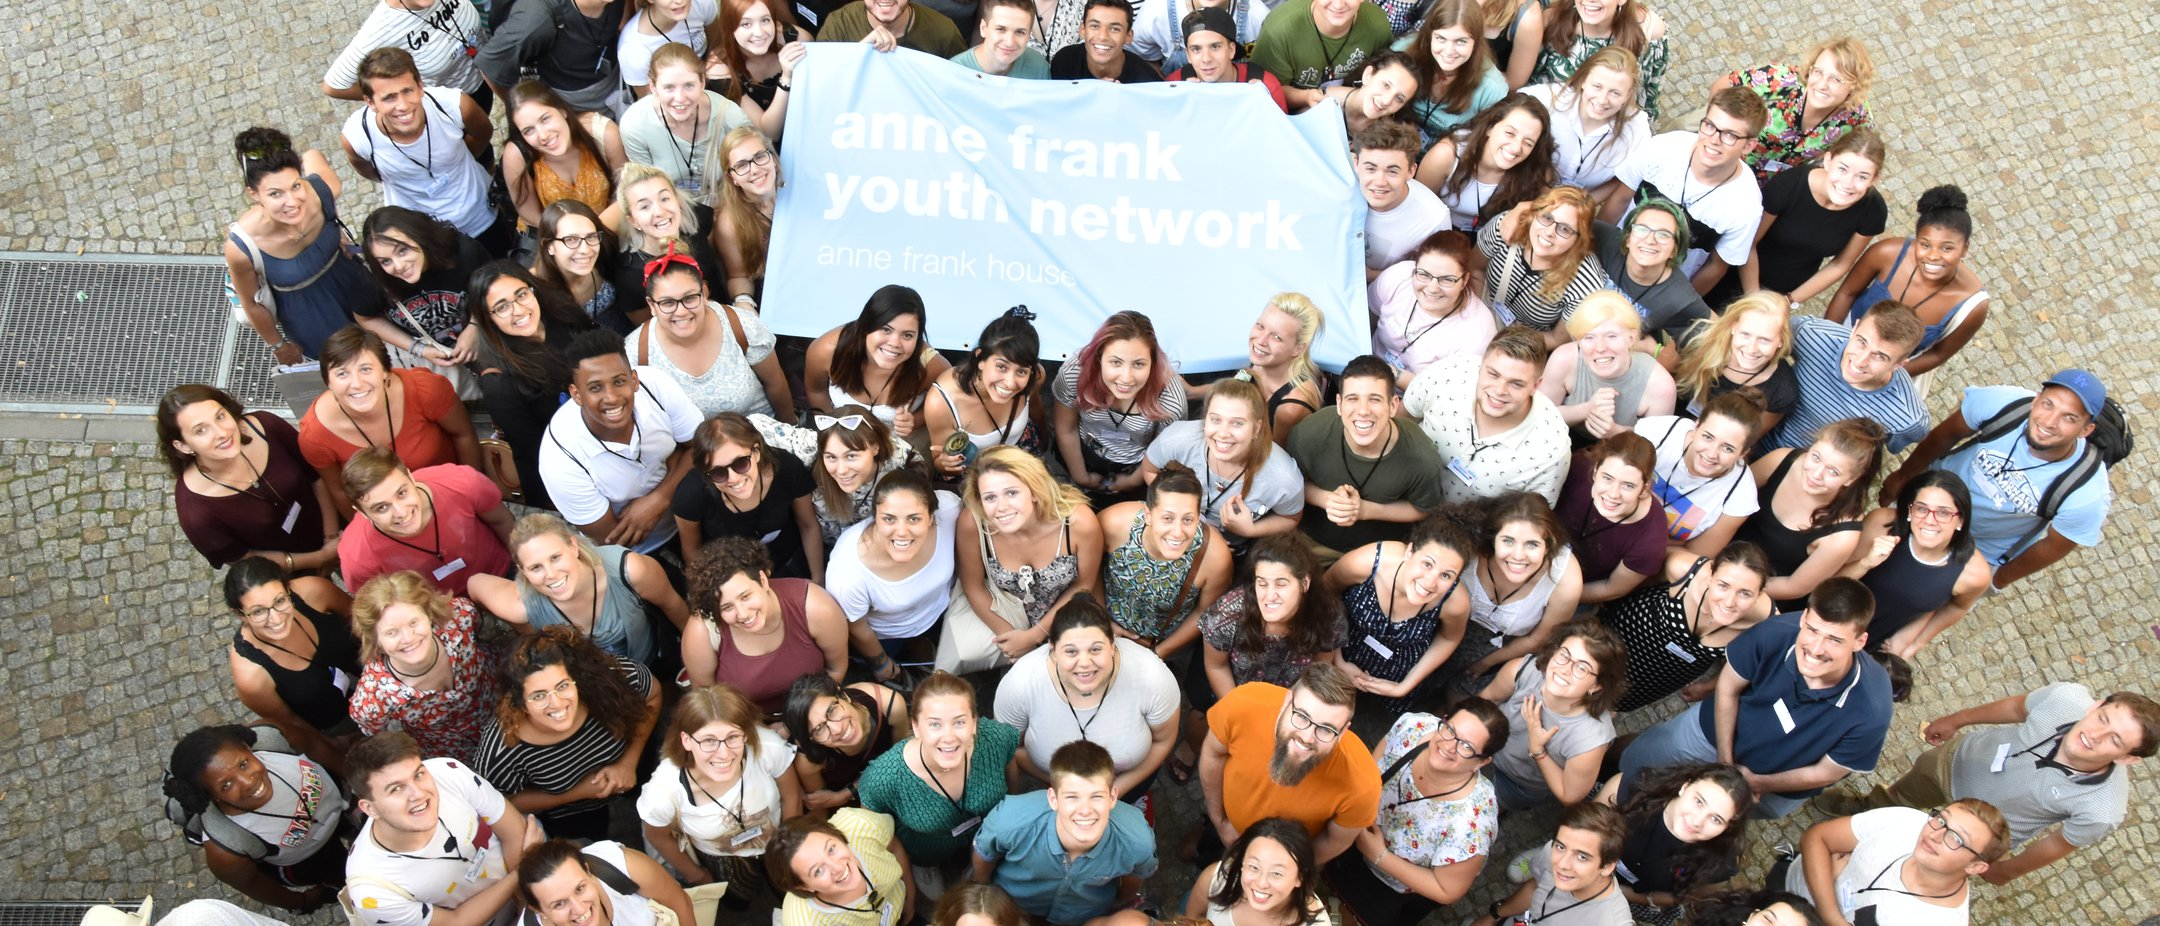 Anne Frank Youth Network